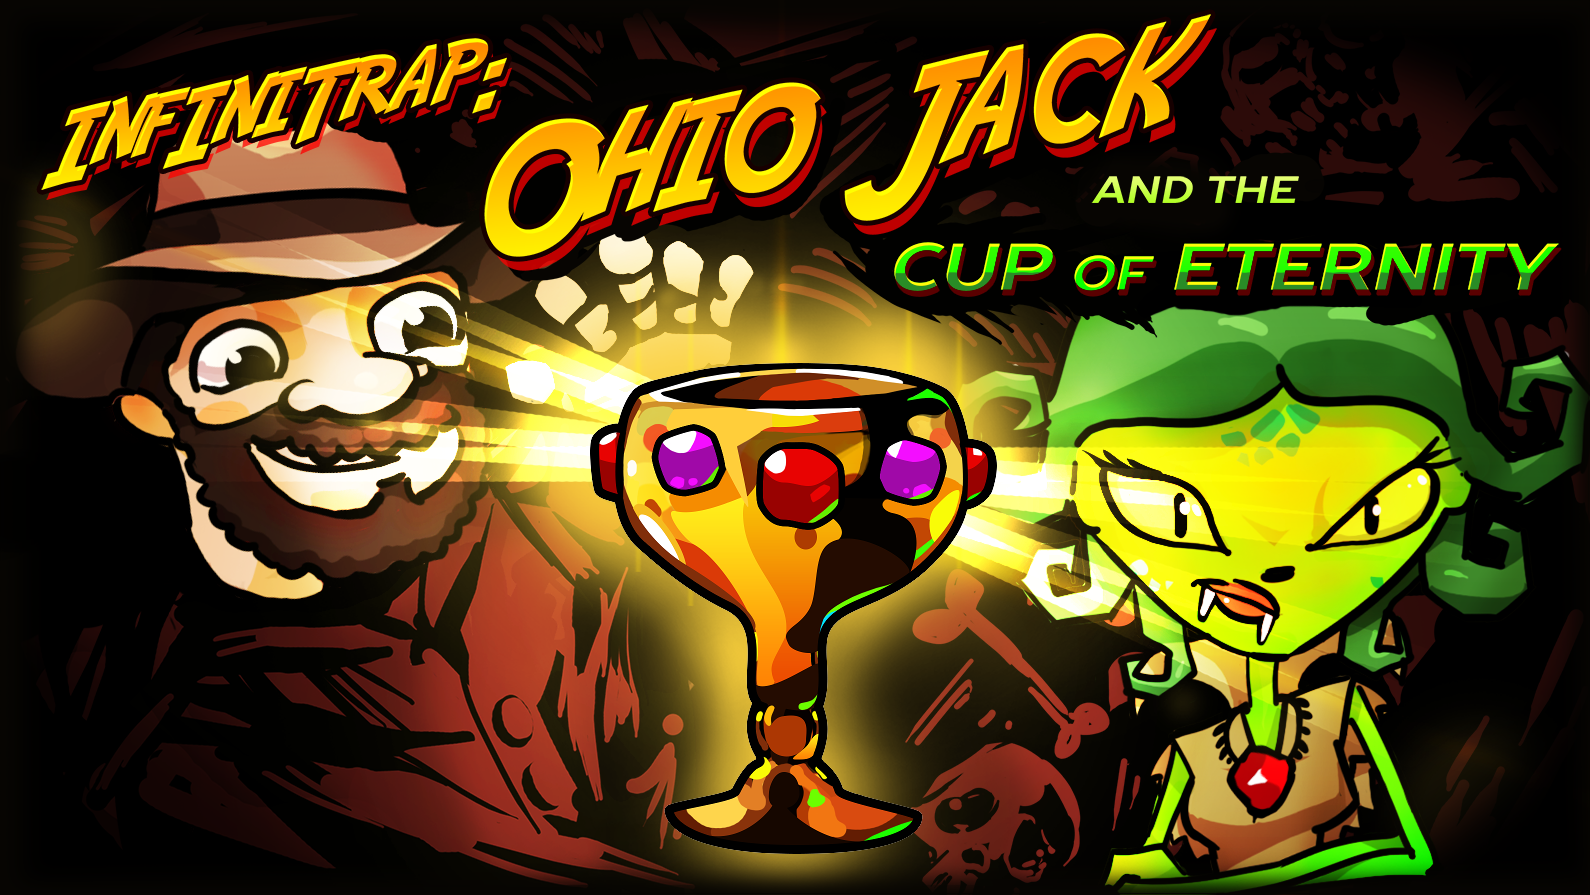 Ohio Jack and The Cup Of Eternity